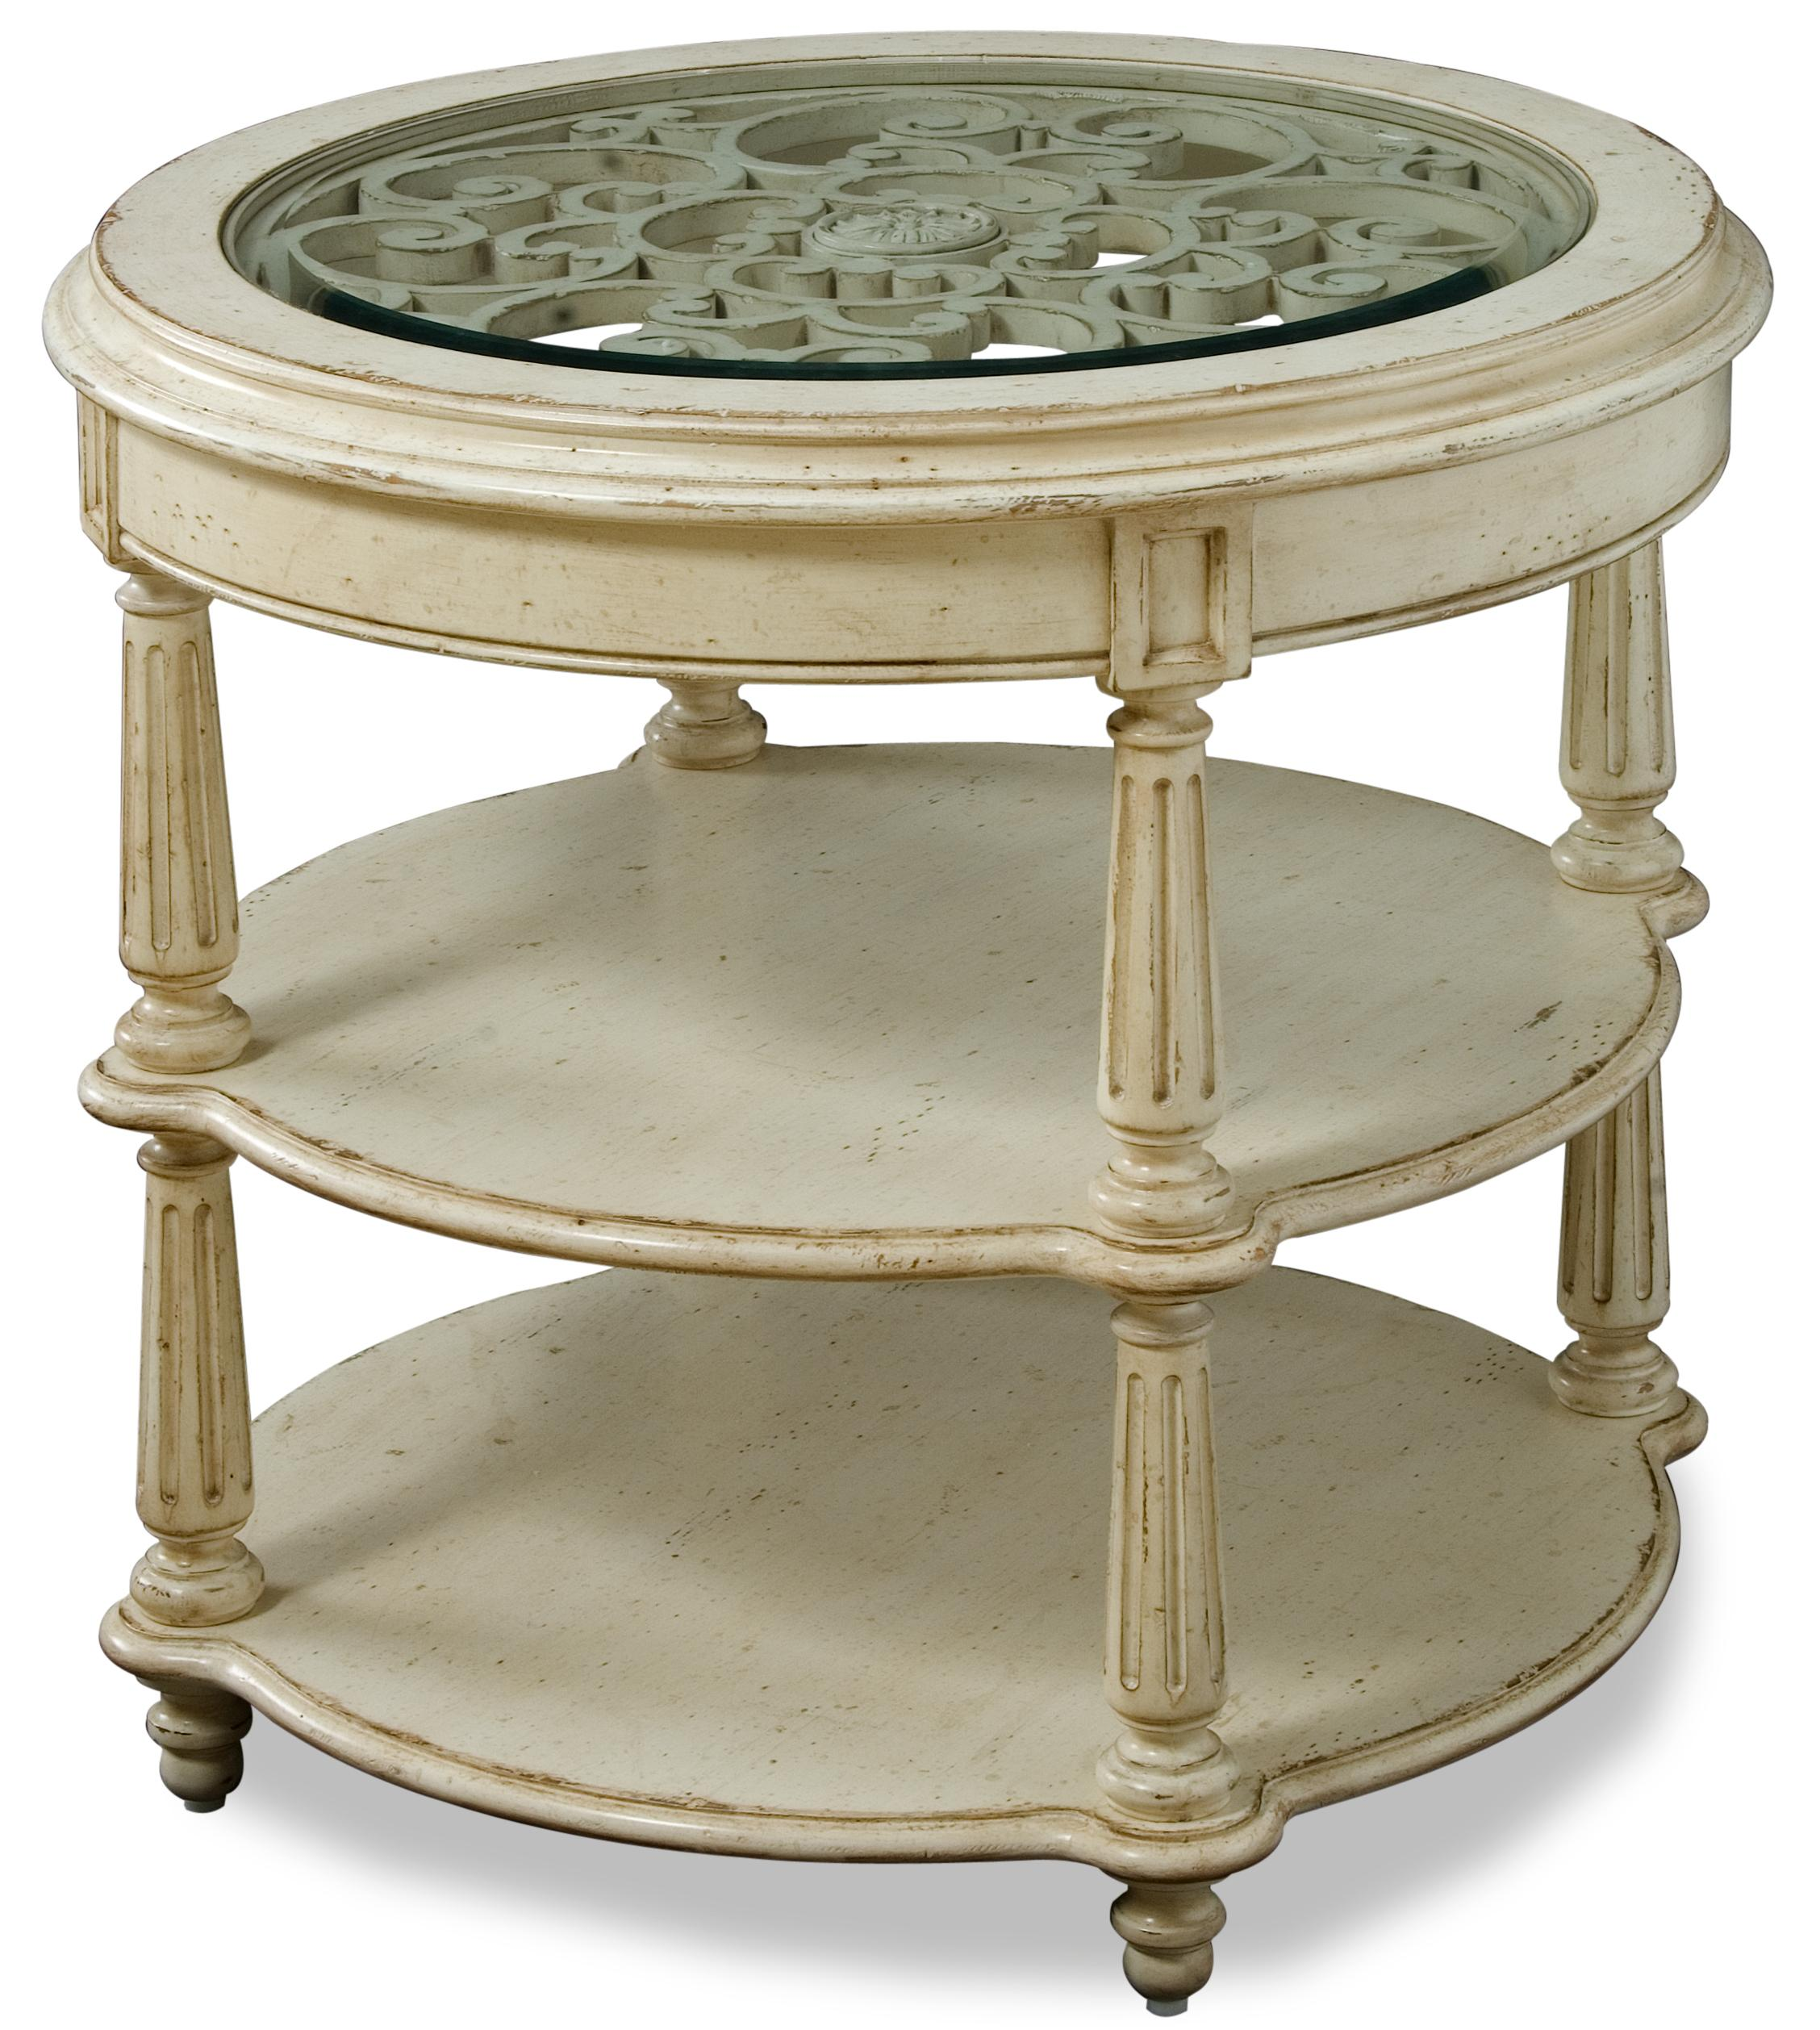 Belfort Signature Sonnet Round Lamp Table - Item Number: 76303